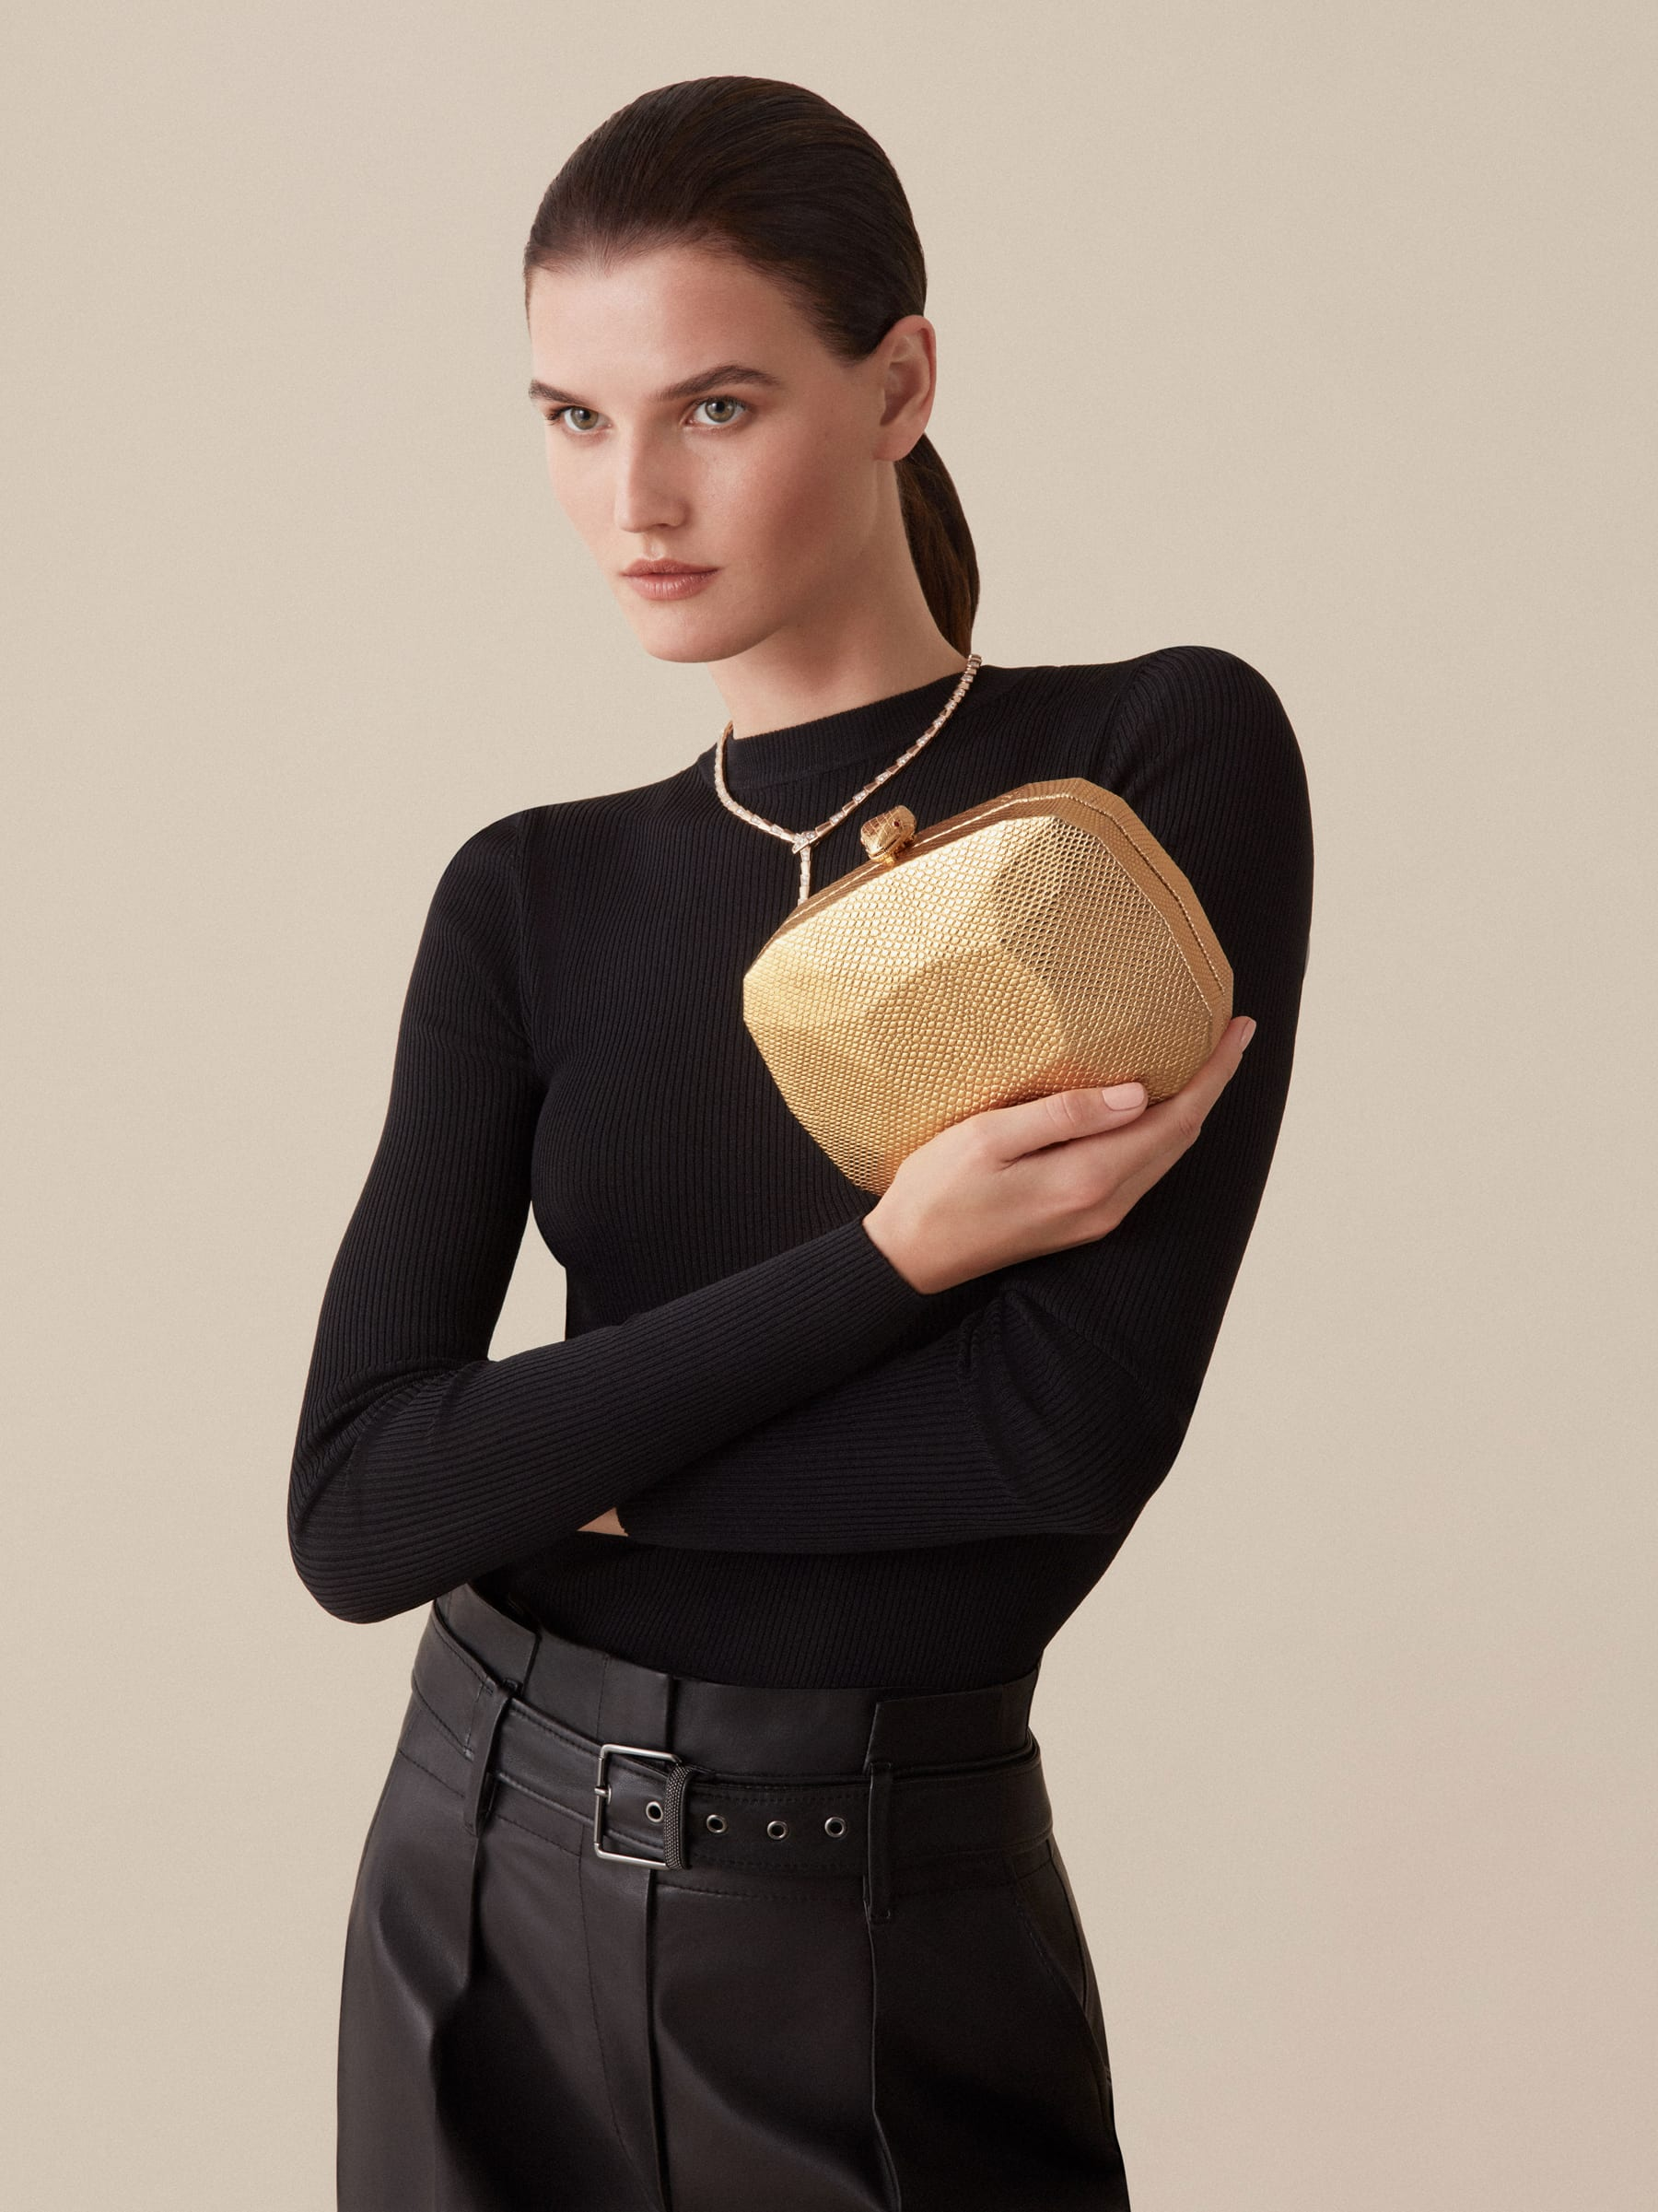 """""""BVLGARI Cocktail"""" hard clutch in """"Molten"""" gold karung skin with black nappa leather inner lining. New Serpenti head closure in gold-plated brass complete with ruby-red enamel eyes. 526-BRILLIANTCUT image 3"""